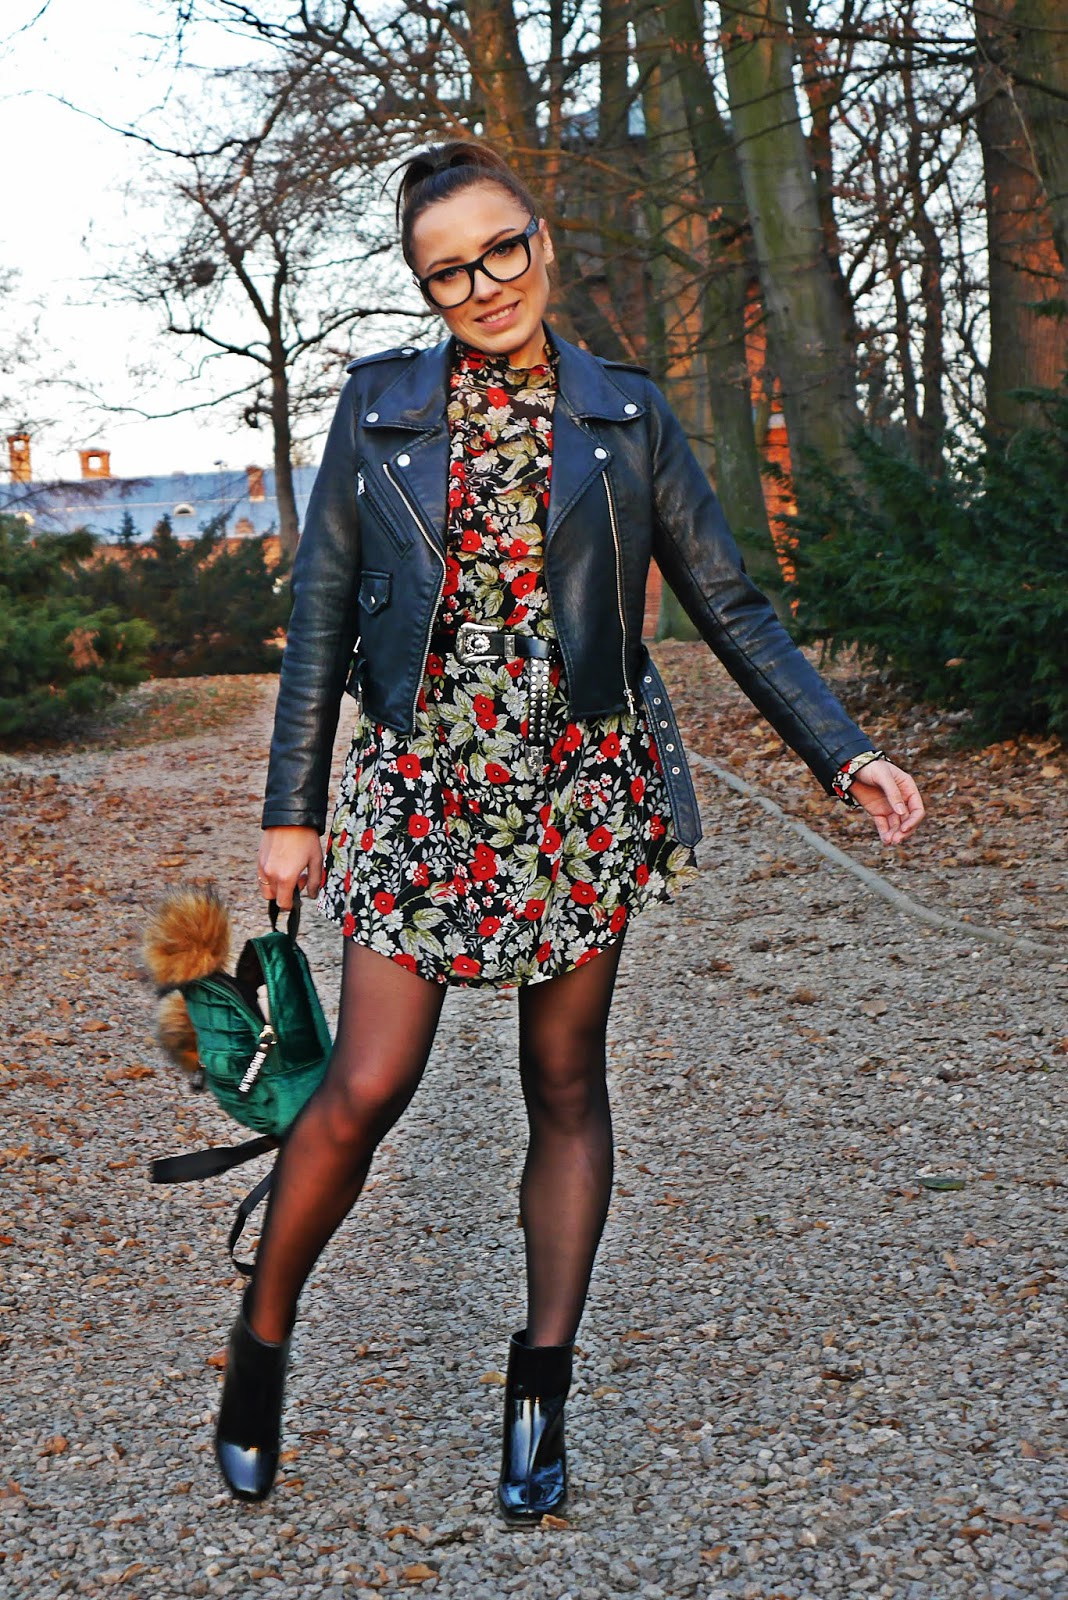 sukienka w kwiaty lakierowane botki bonprix czarna ramoneska karyn blog modowy blogerka modowa ciekawy blog o modzie floral dress outfit black shiny boots green backpack